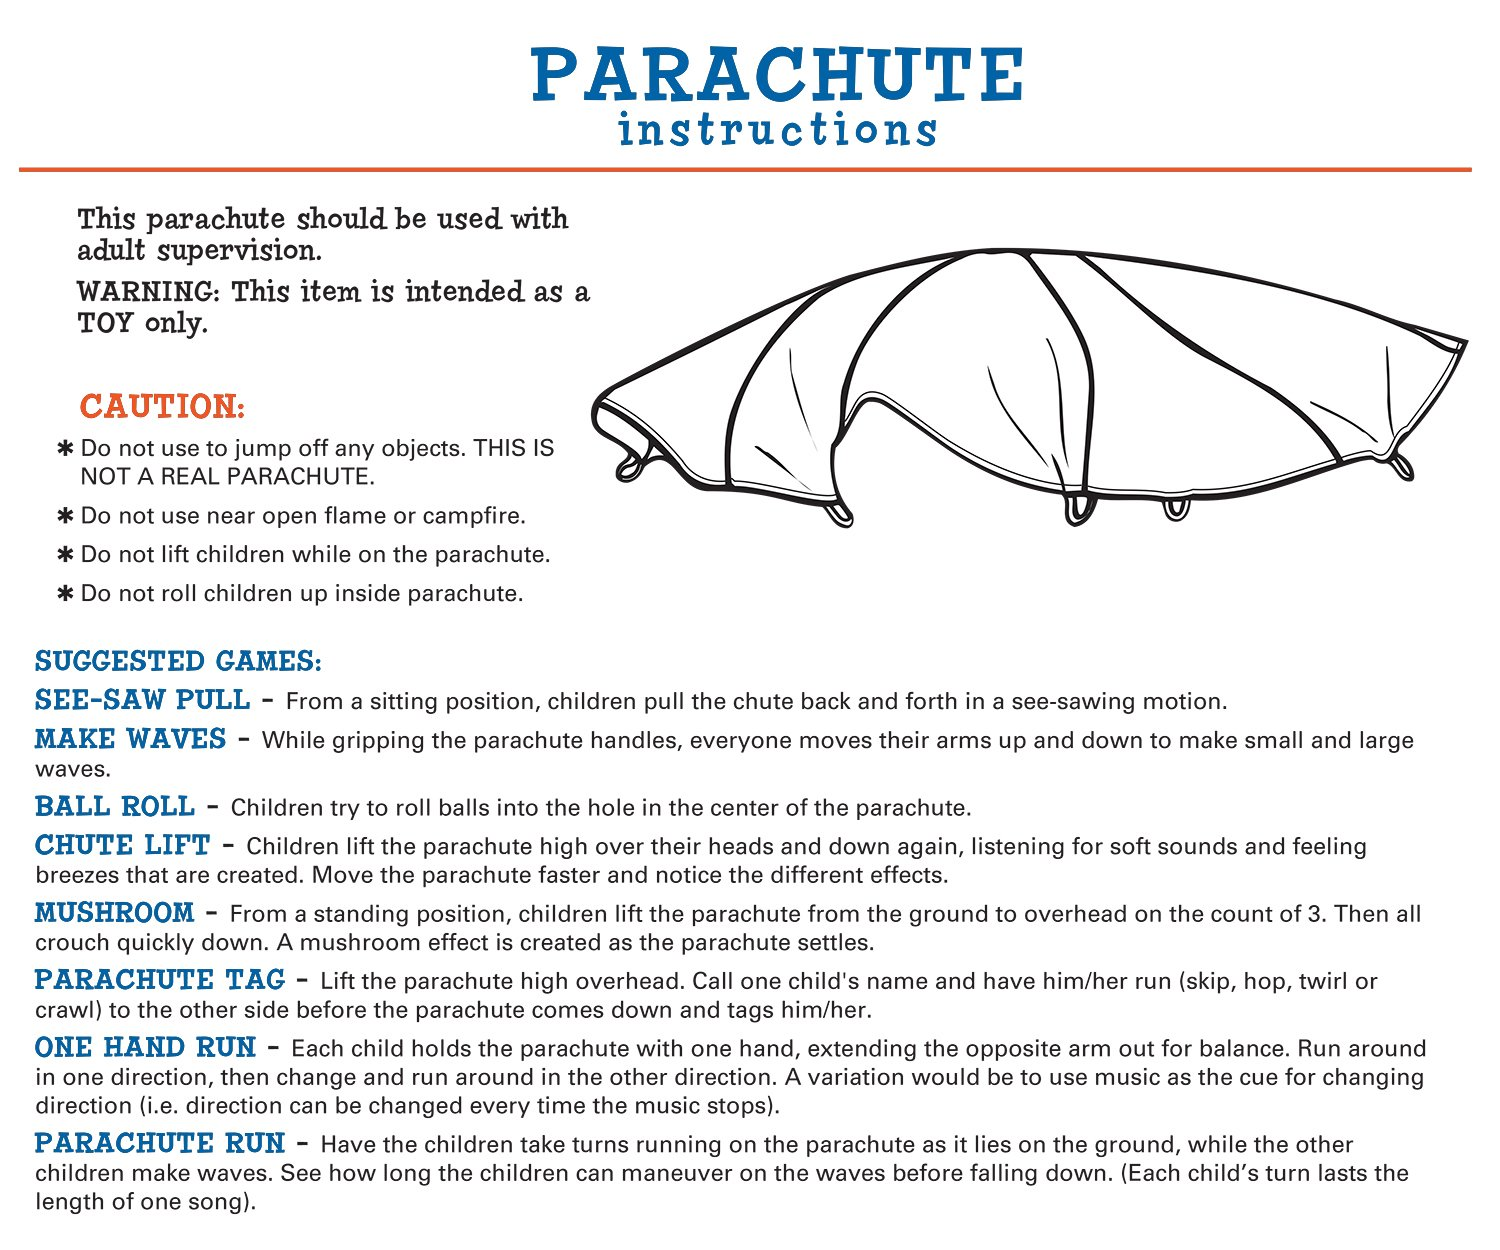 Pacific Play Tents 30' Parachute with No Handles and Carry Bag